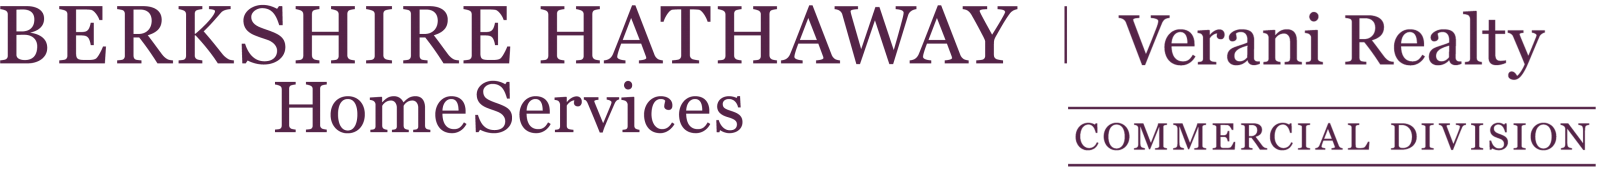 Berkshire Hathaway HomeServices Verani Realty